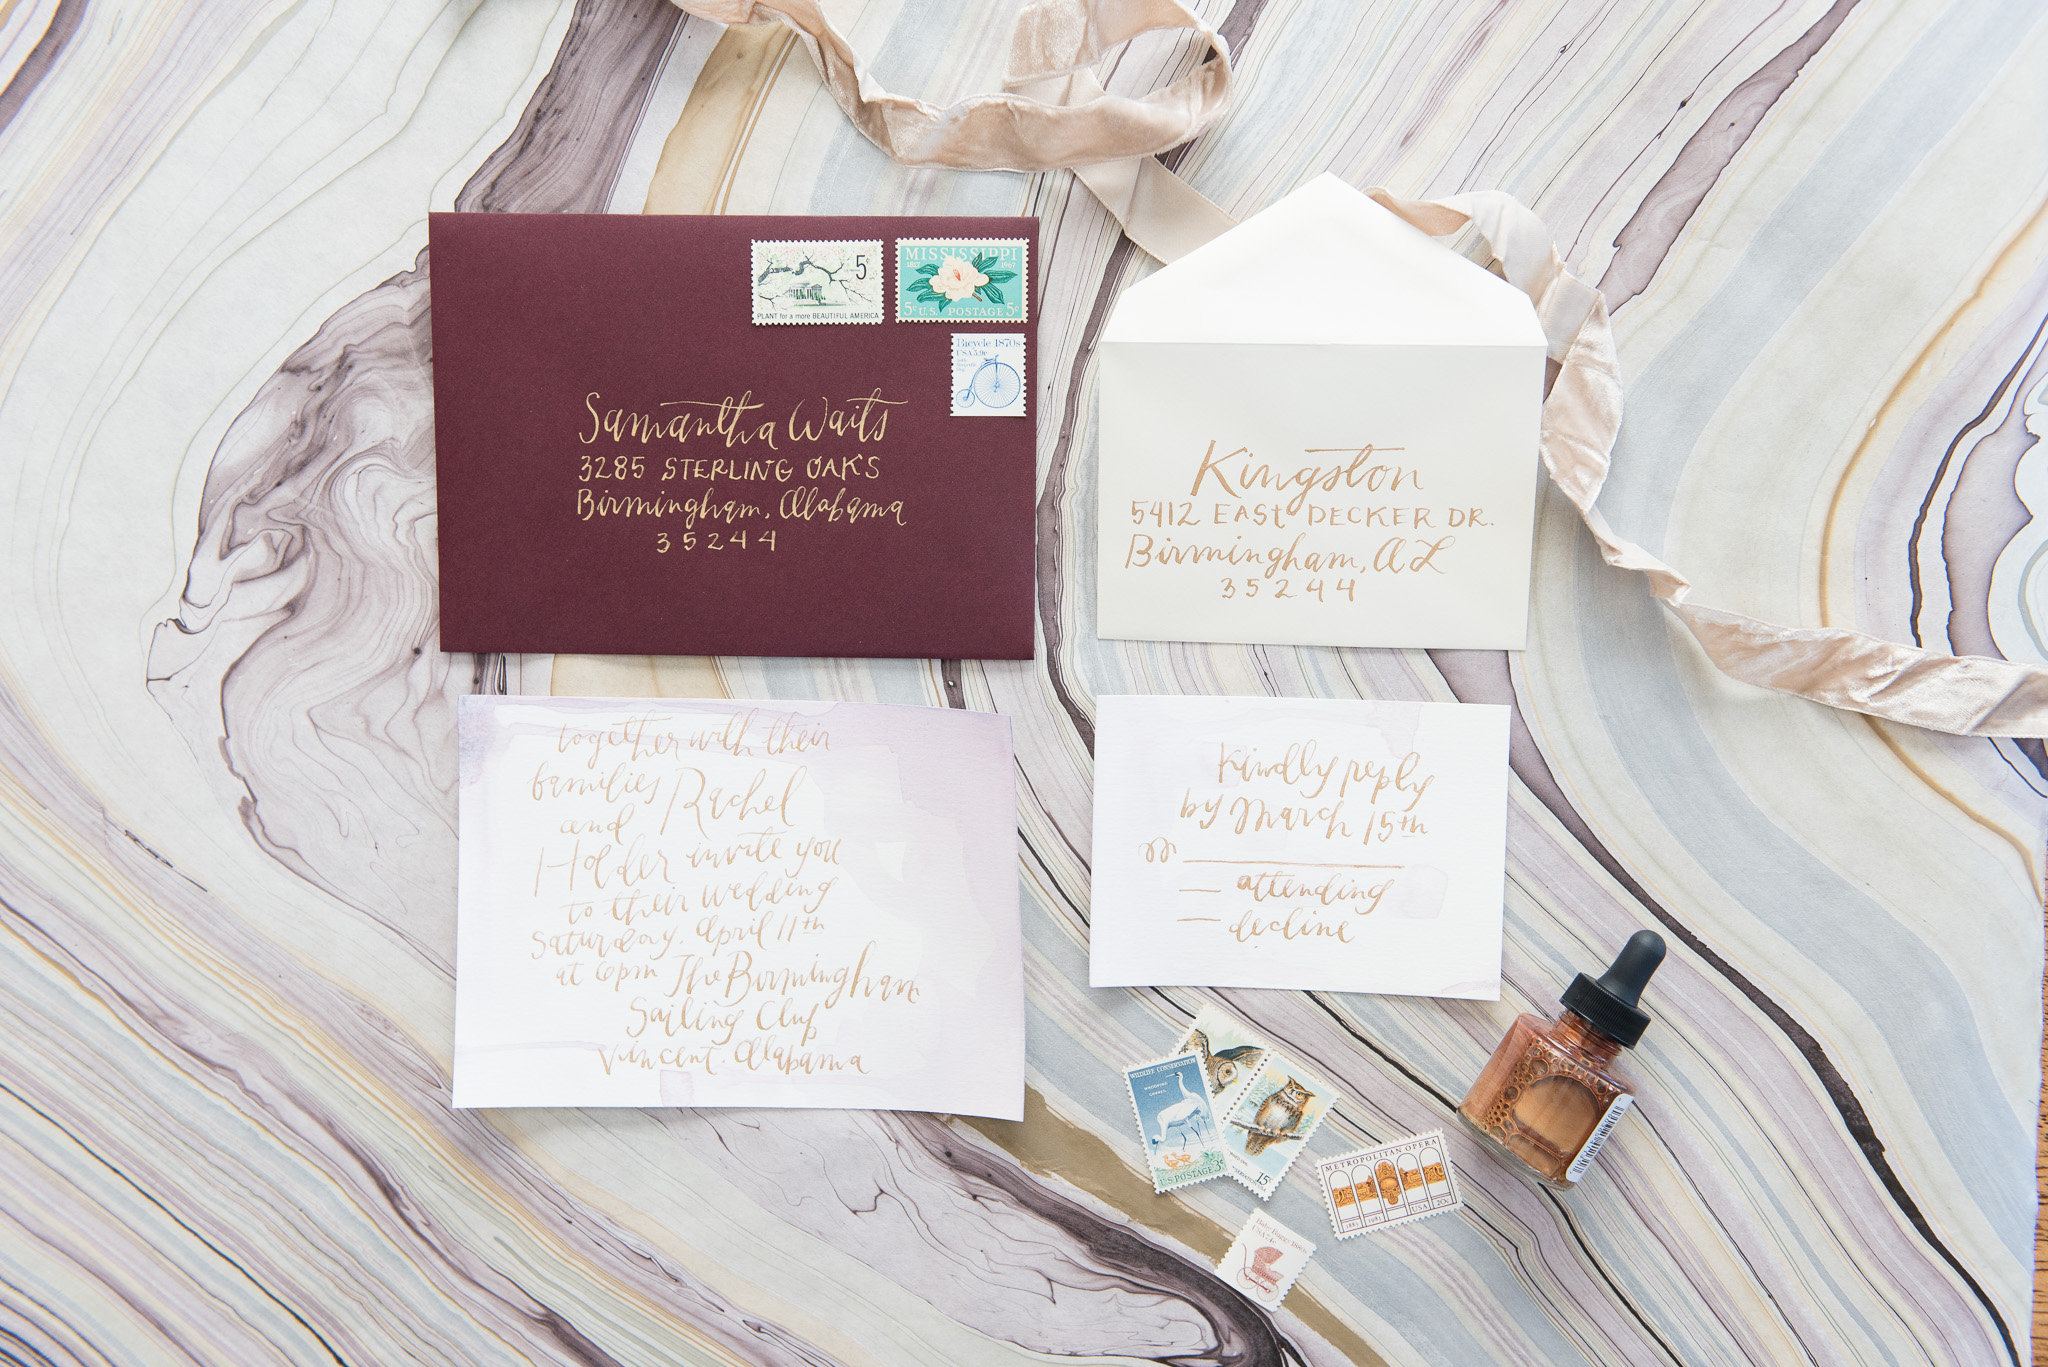 Laura McCarty | Eric & Jamie Photography | Handley Breaux Designs